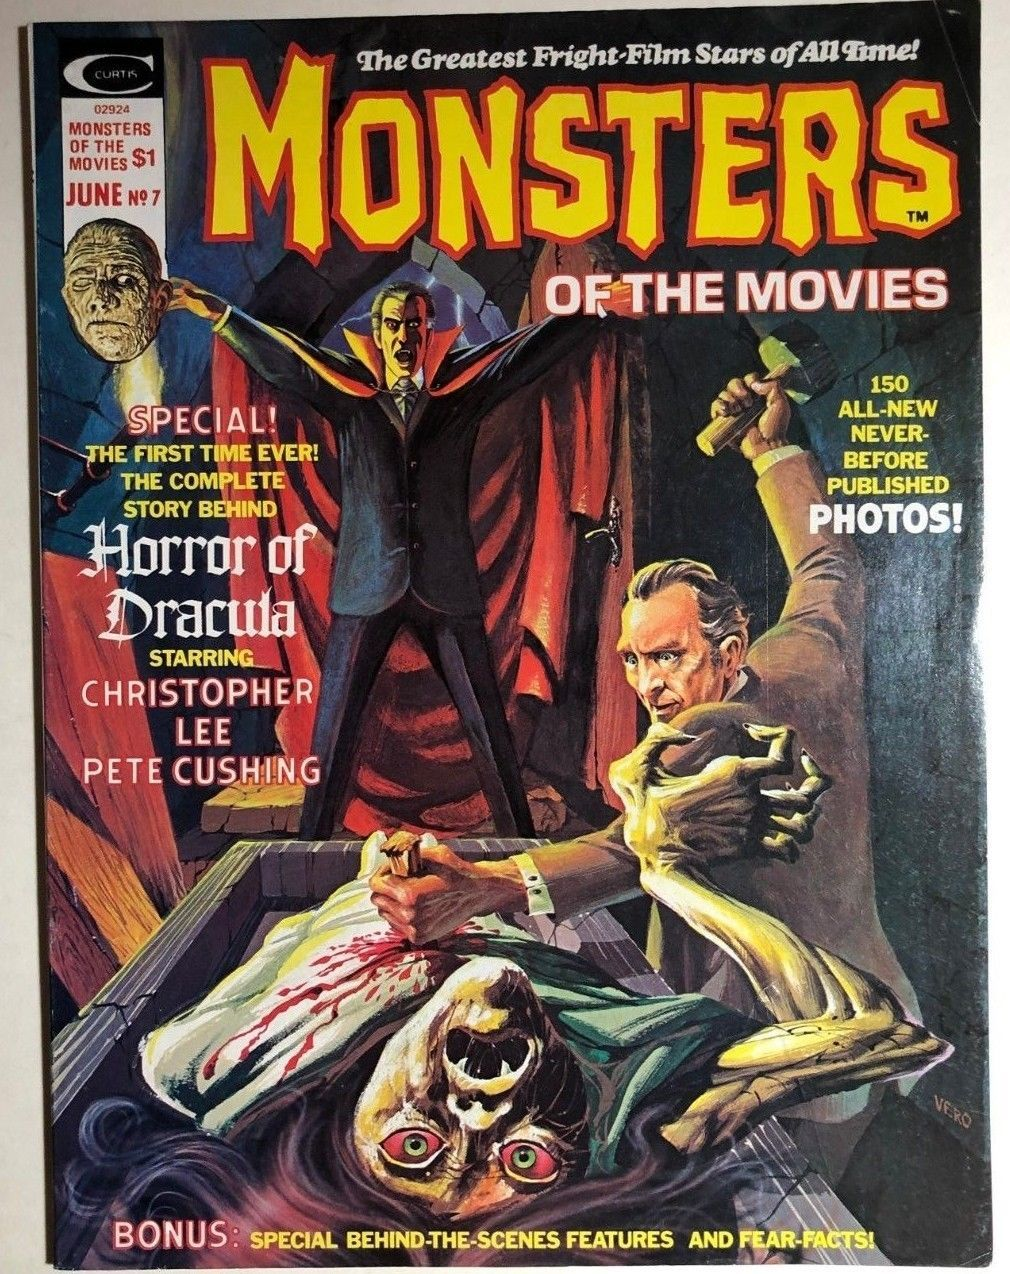 Primary image for MONSTERS OF THE MOVIES #7 (1976) Marvel Comics B&W magazine FINE- White Mountain